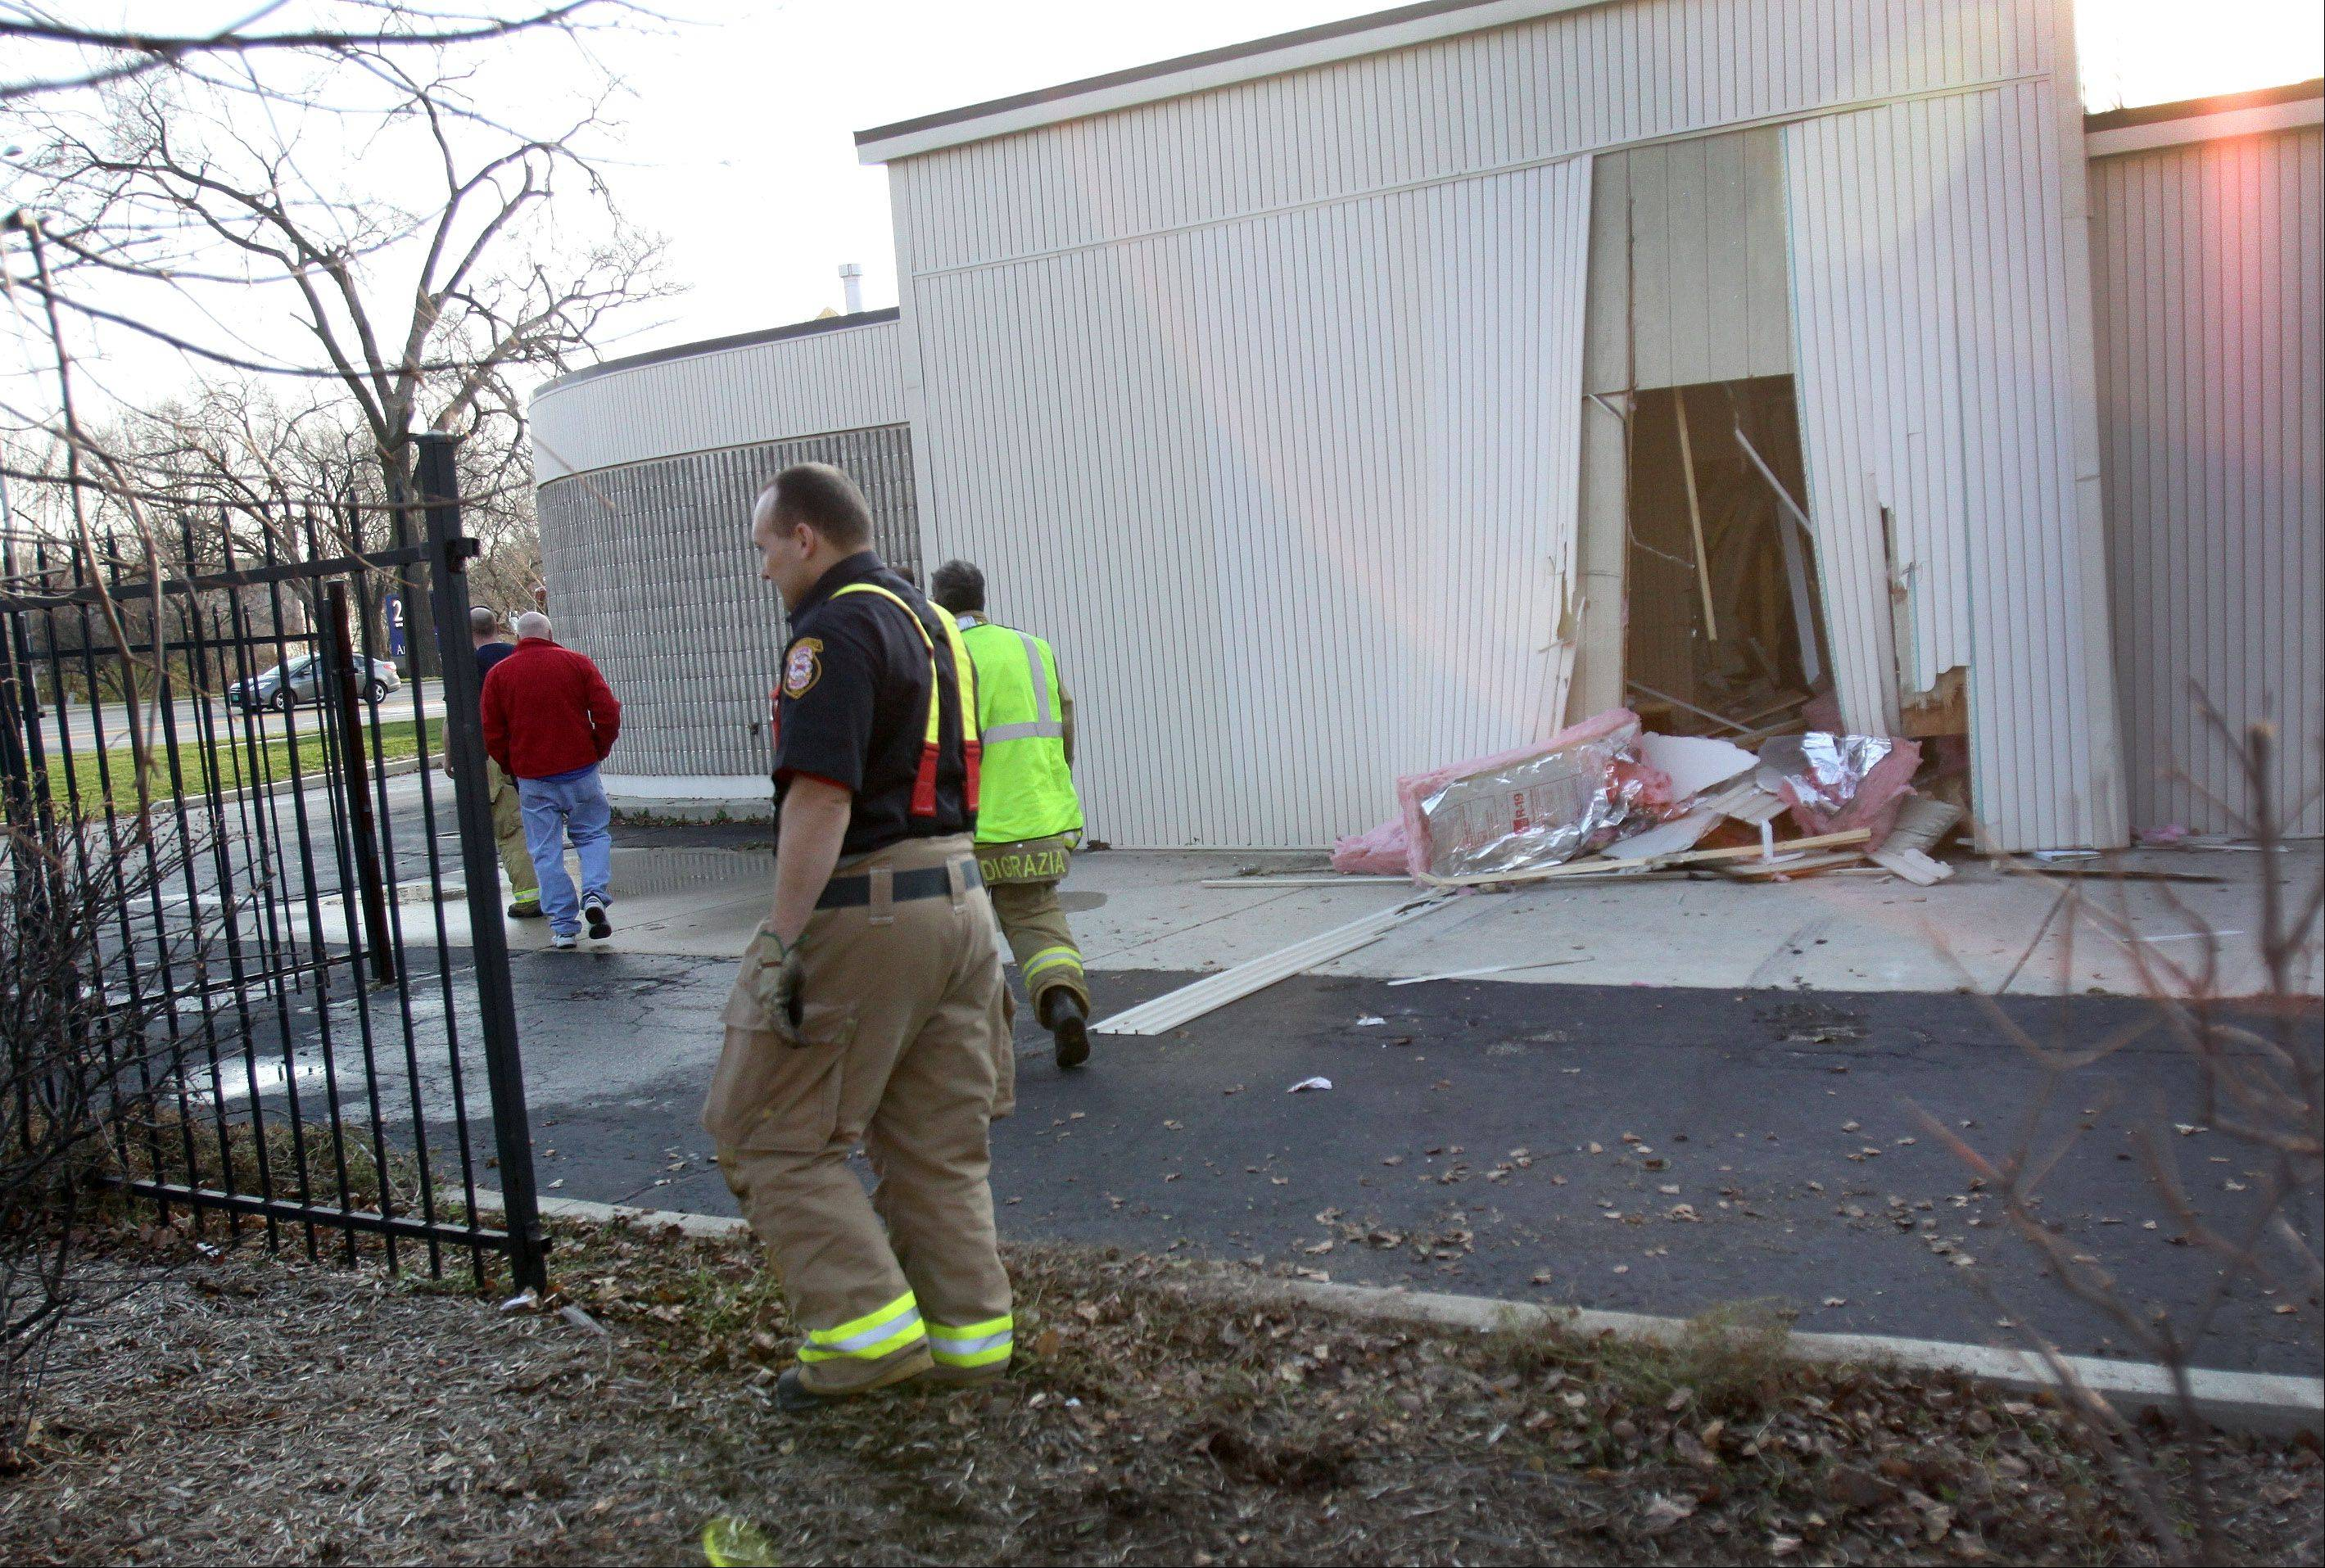 Firefighters estimate a car did about $50,000 to a Naperville eye care center Friday when it crashed through an exterior wall.